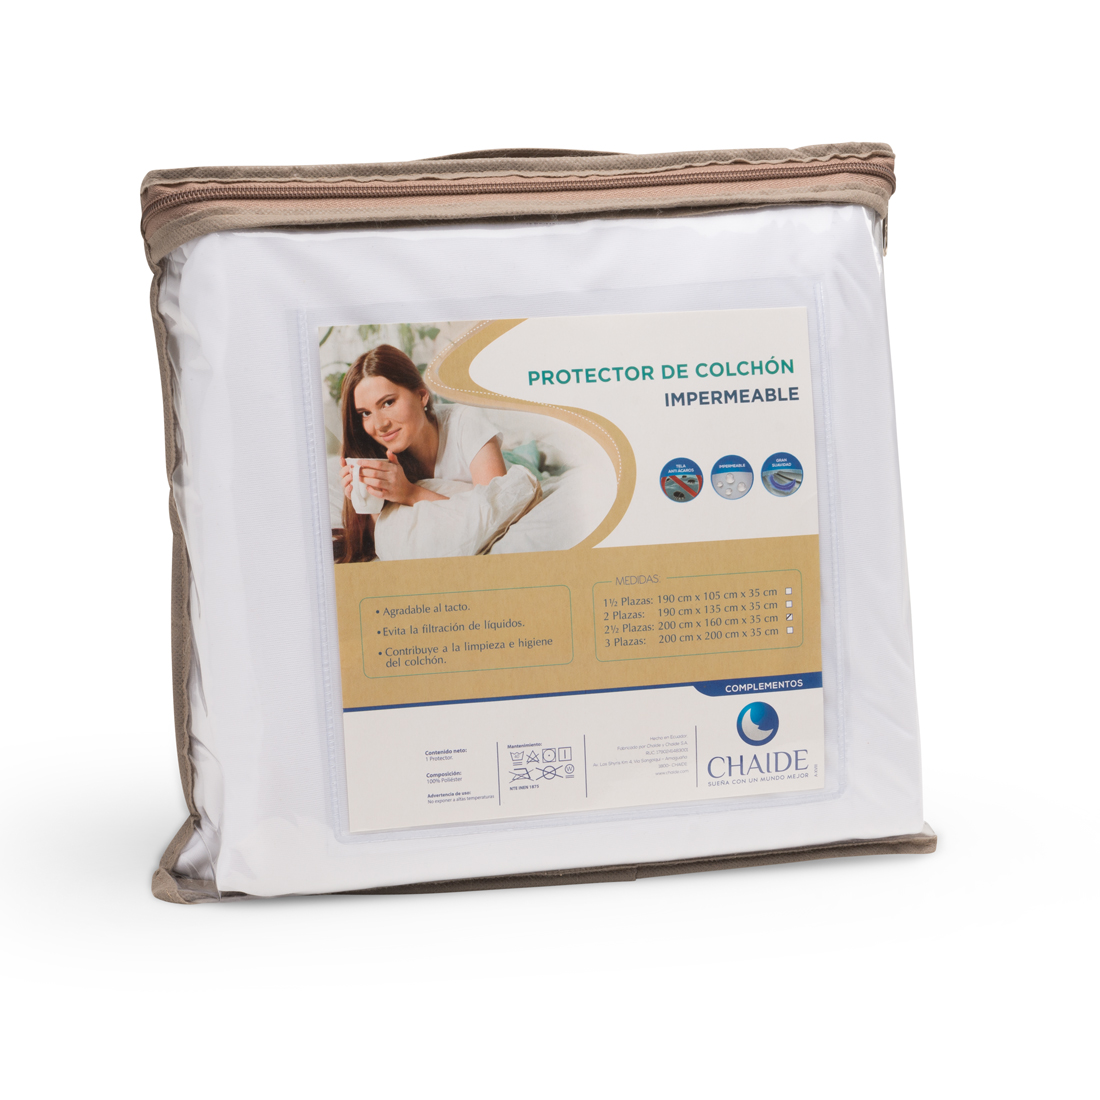 Protector De Colchón CHAIDE Impermeable 2 y Media Plazas Blanco